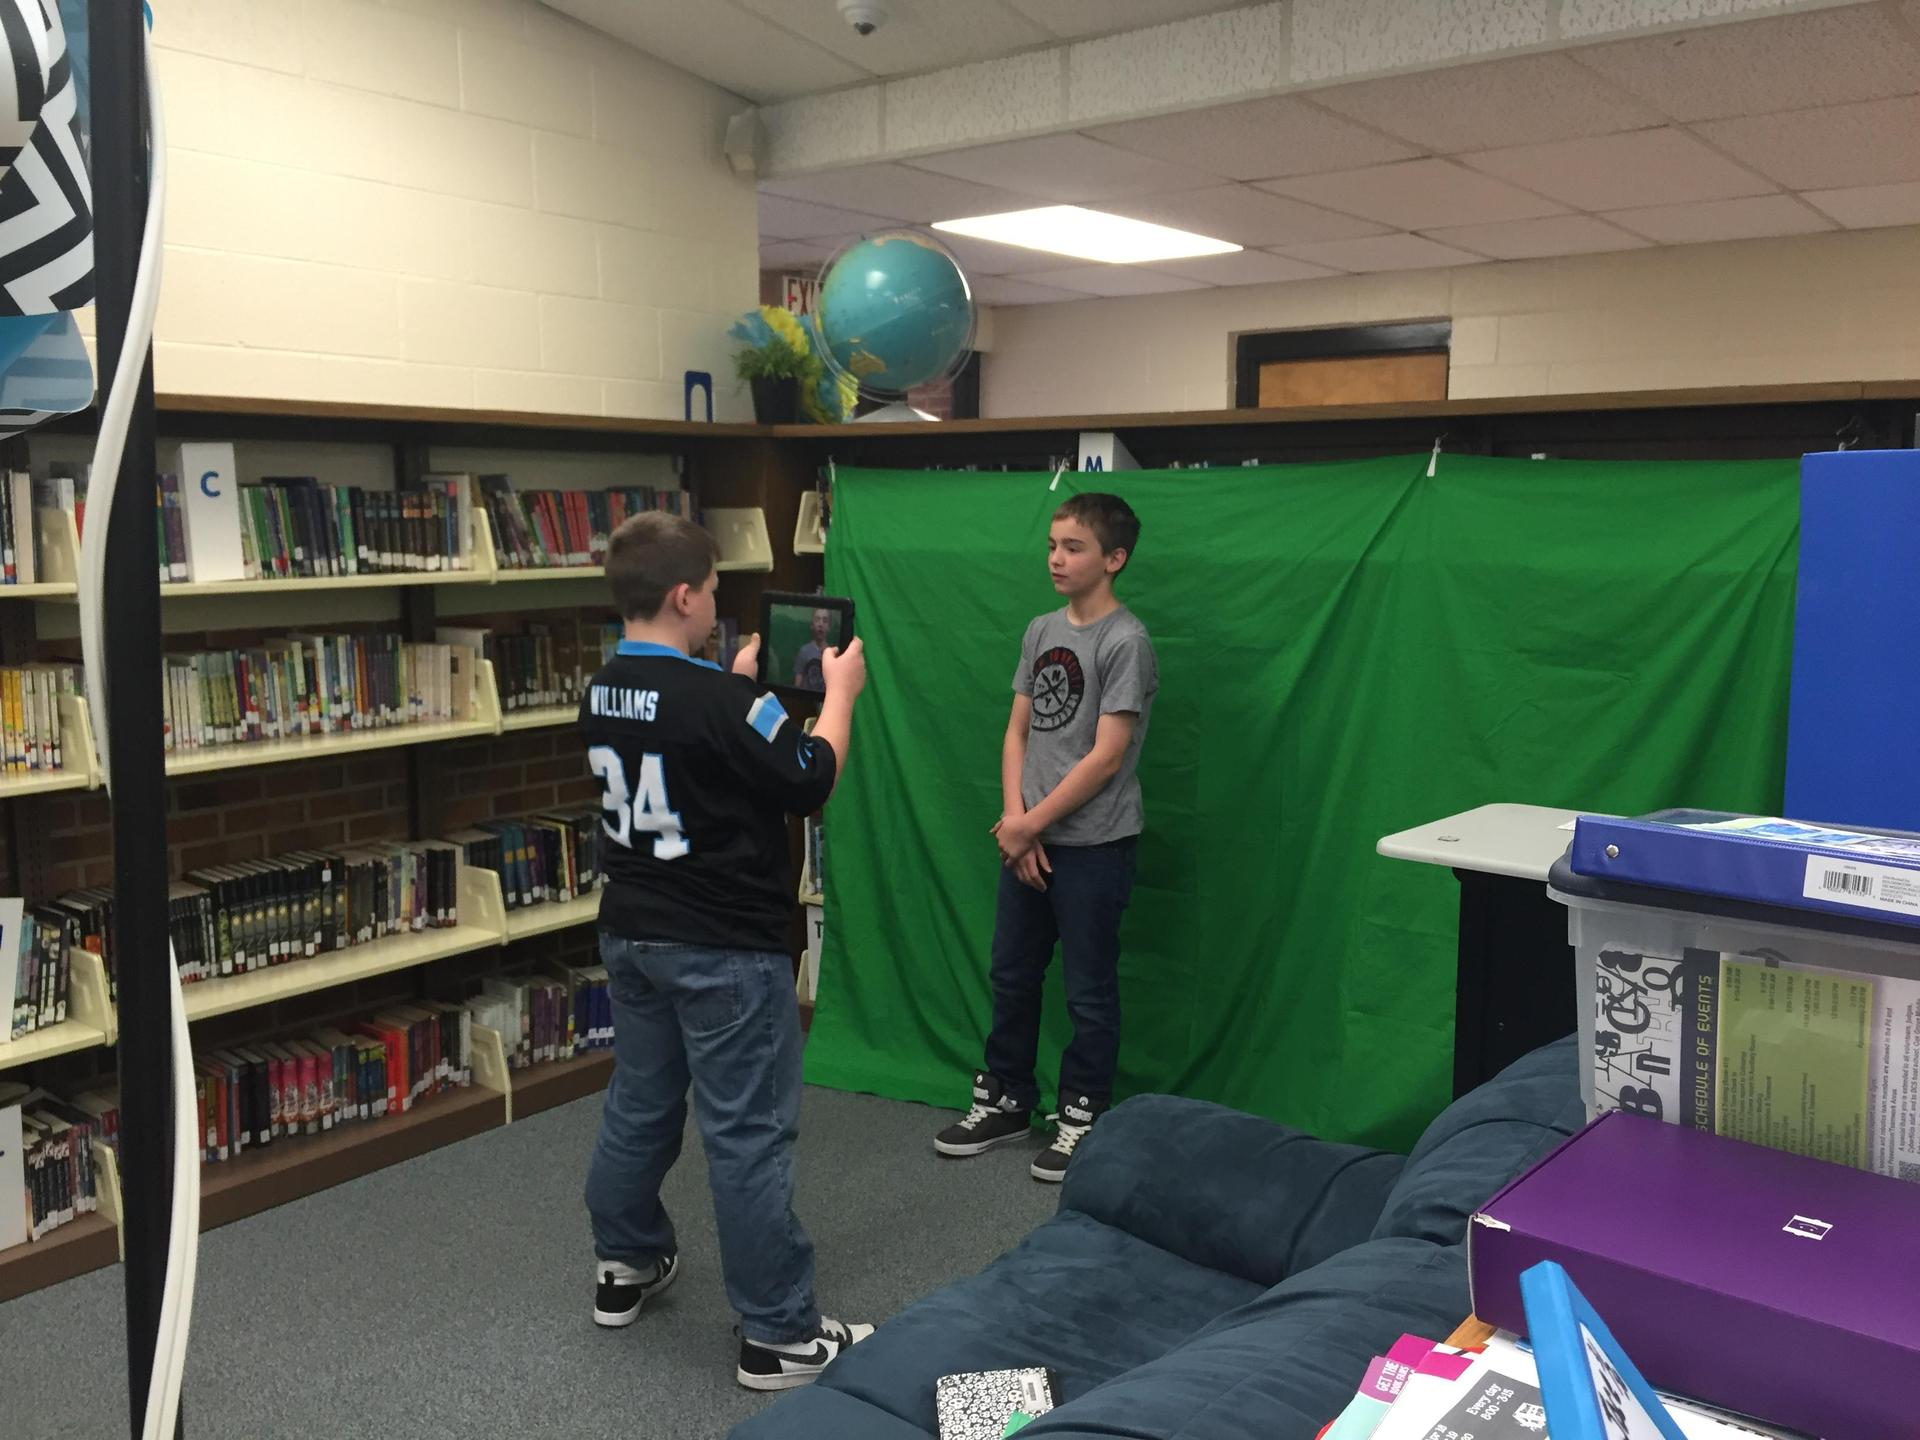 Explore and Discover using Green Screen Video Production